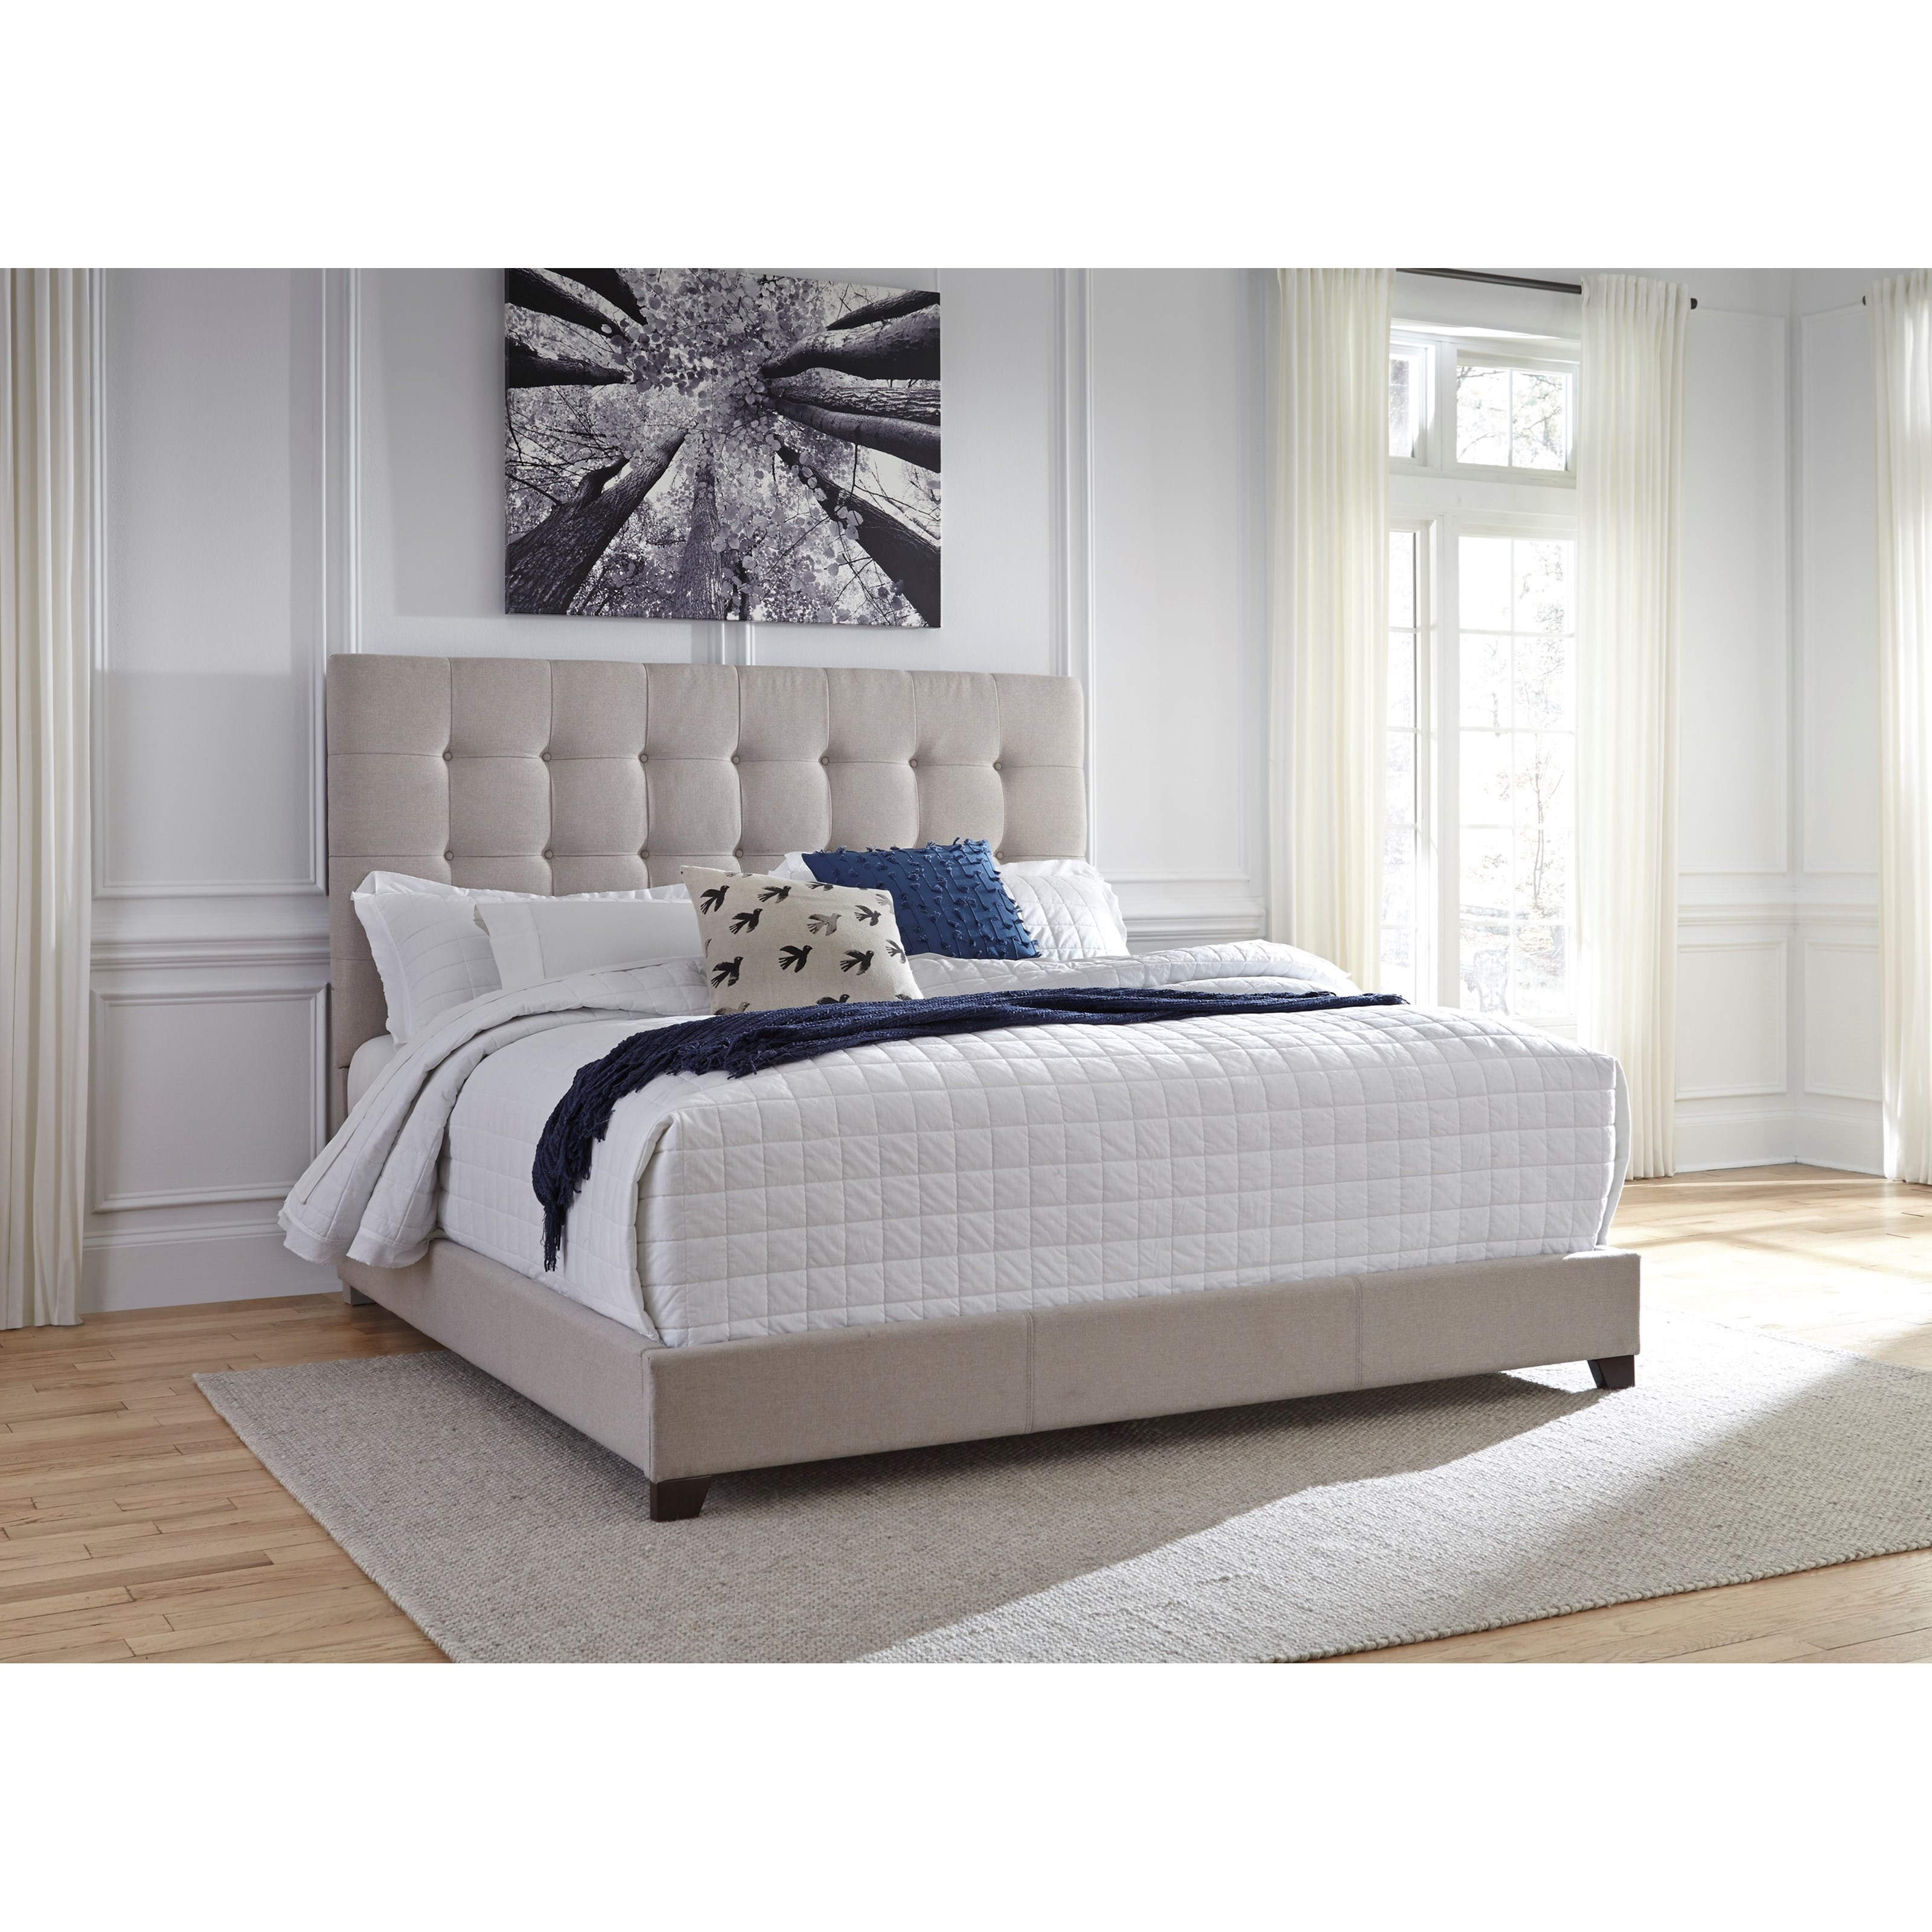 Signature Design By Ashley Dolante Queen Upholstered Bed W